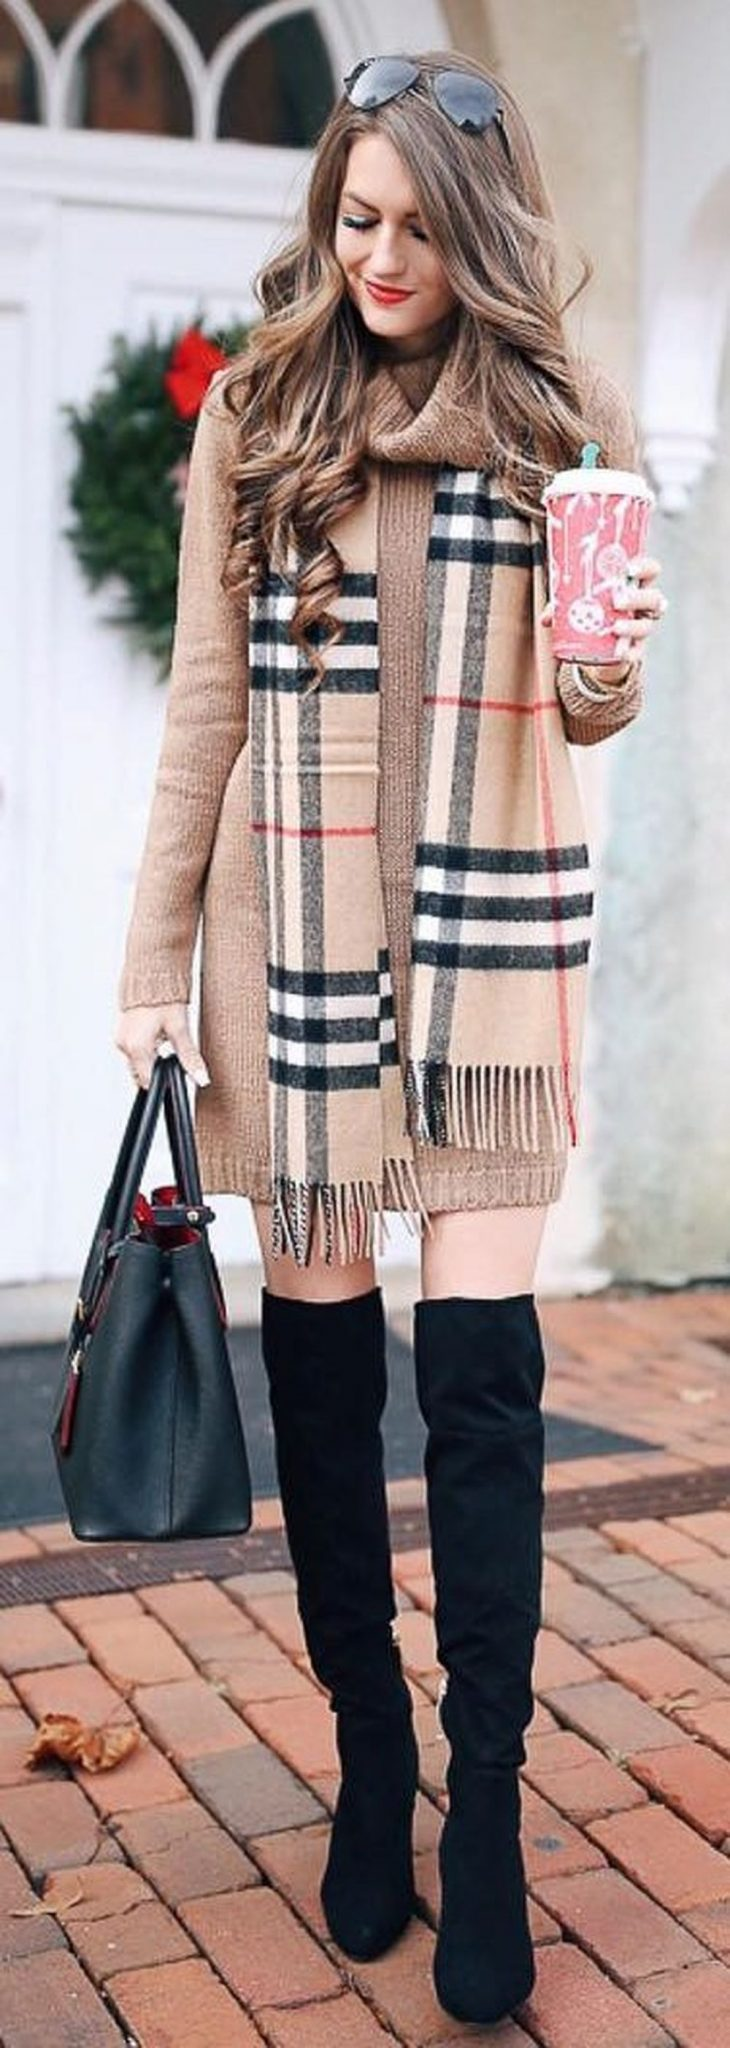 Fashionable scarves for winter outfits 63